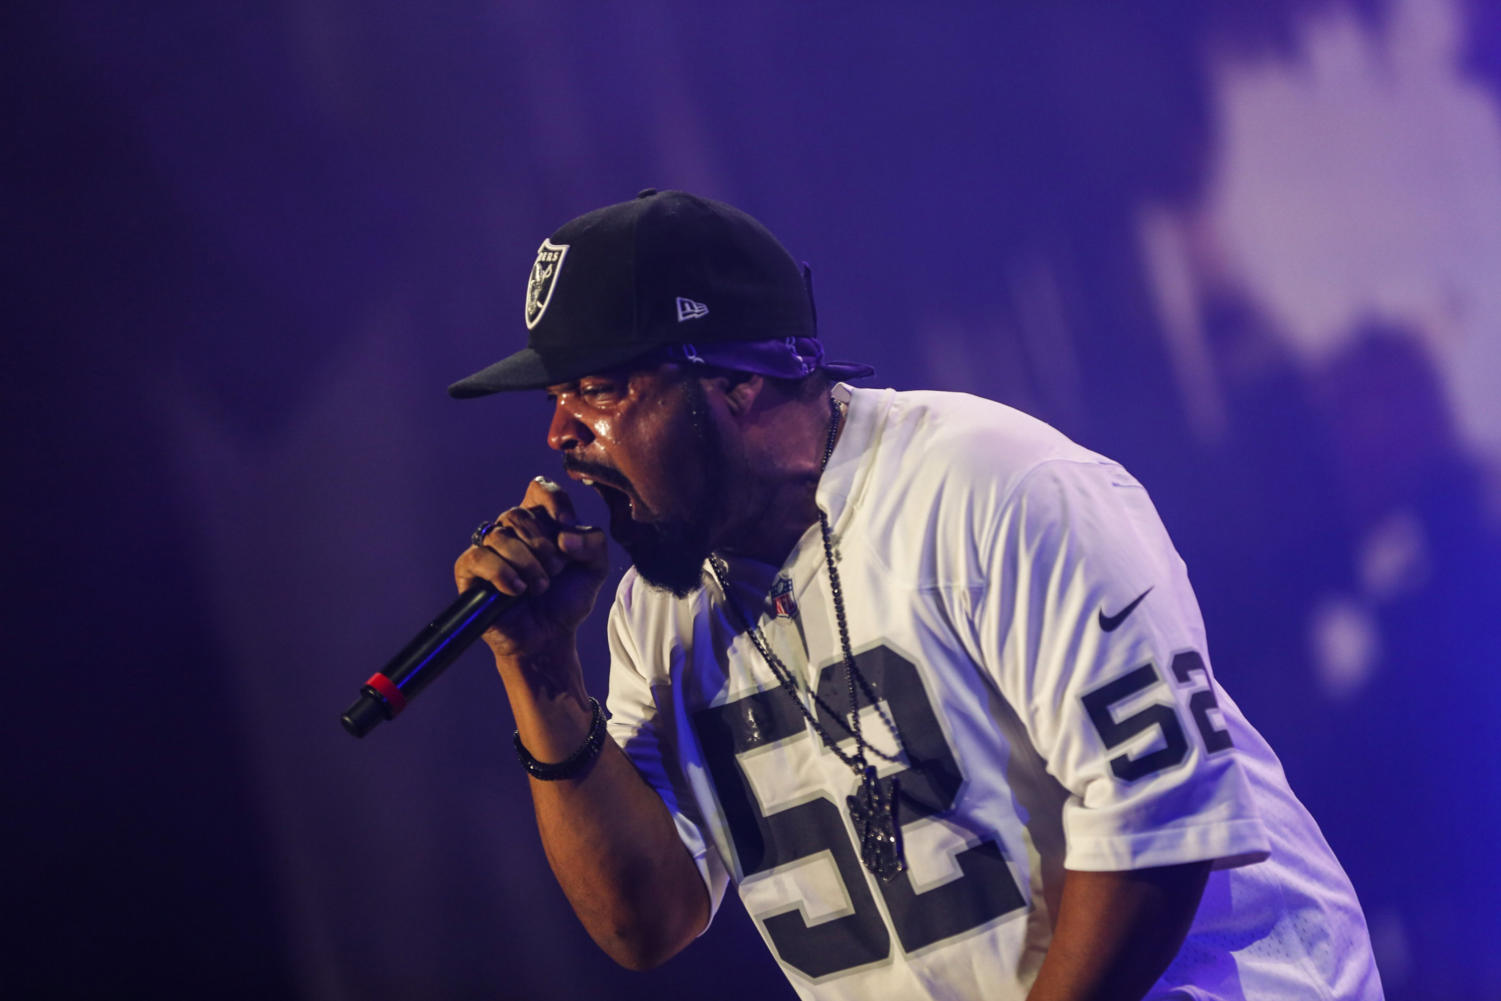 Ice Cube performs during the Coachella Valley Music and Arts Festival in Indio, Calif., on Saturday, April 23, 2016. Ice Cube's BIG3 basketball league is preparing for its debut in Brooklyn. (Jay L. Clendenin/Los Angeles Times/TNS)